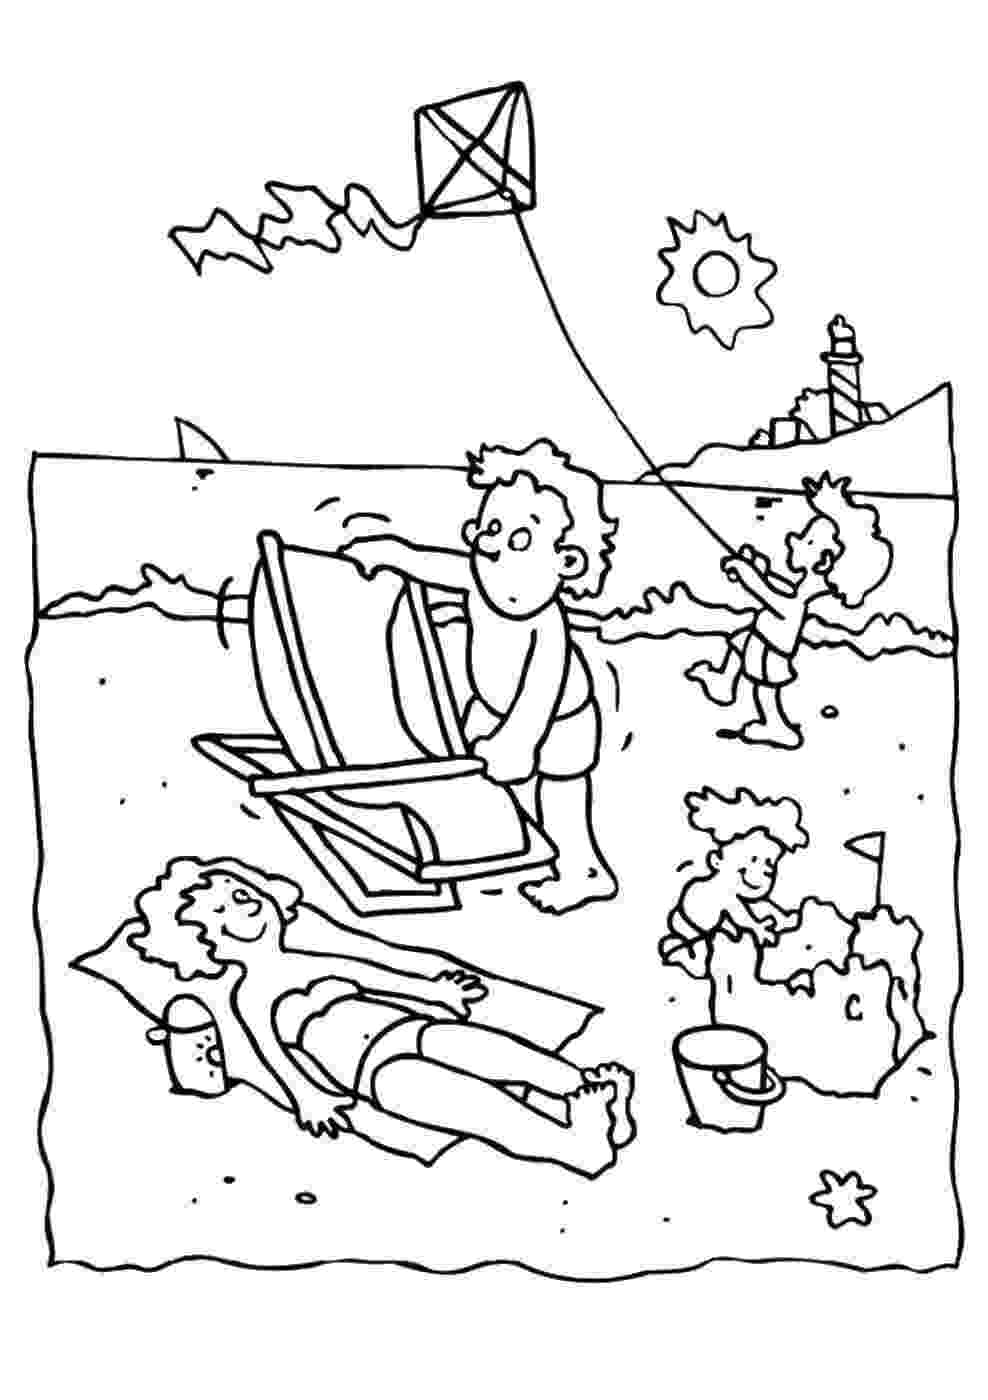 beach coloring page free printable beach coloring pages for kids beach page coloring 1 1